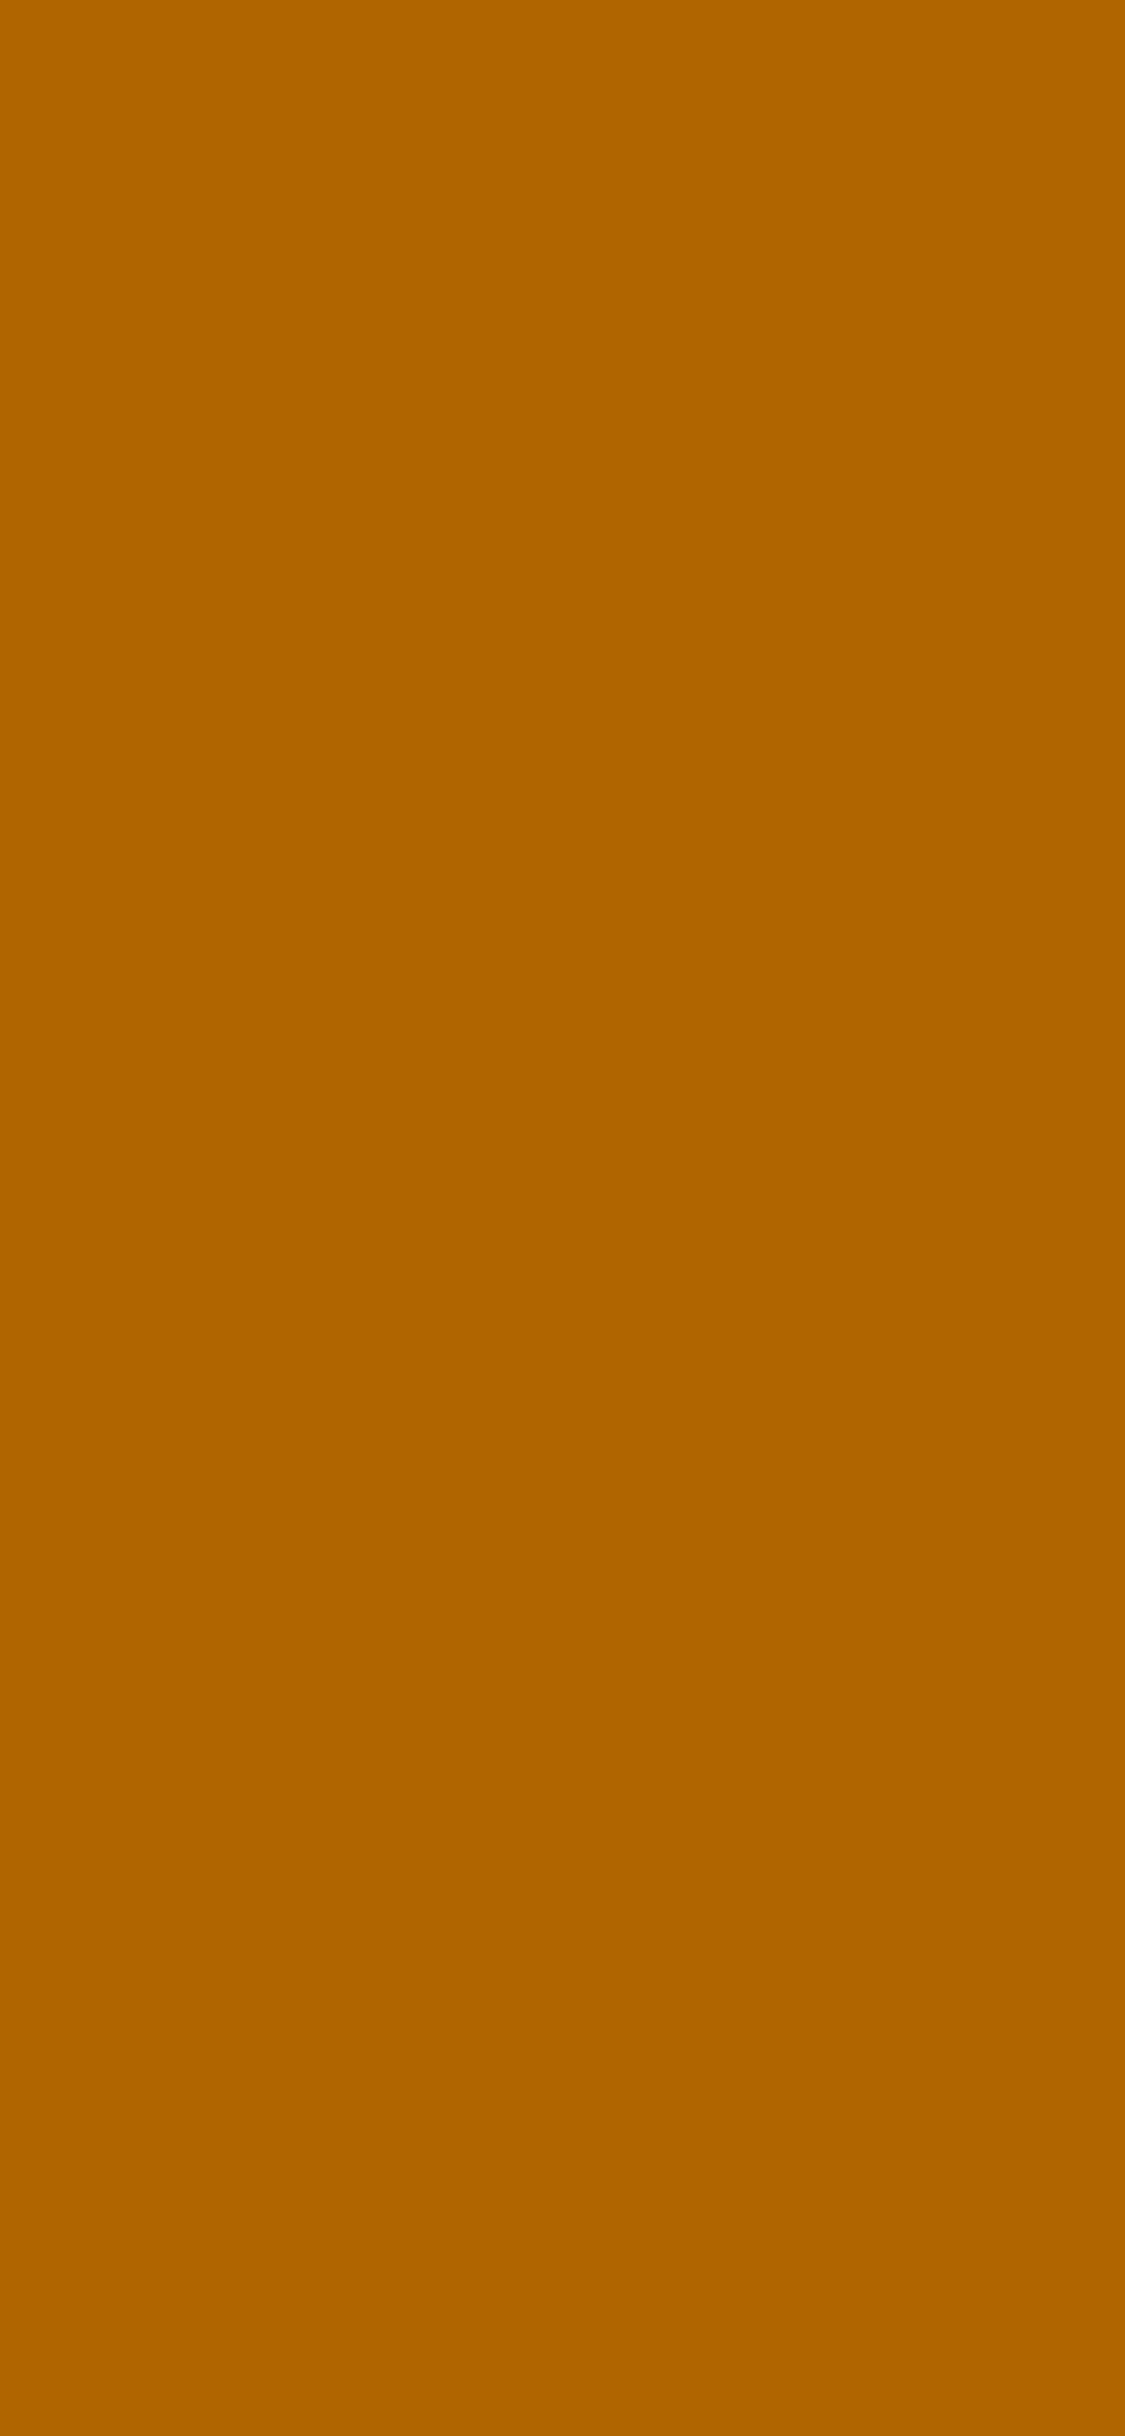 1125x2436 Ginger Solid Color Background